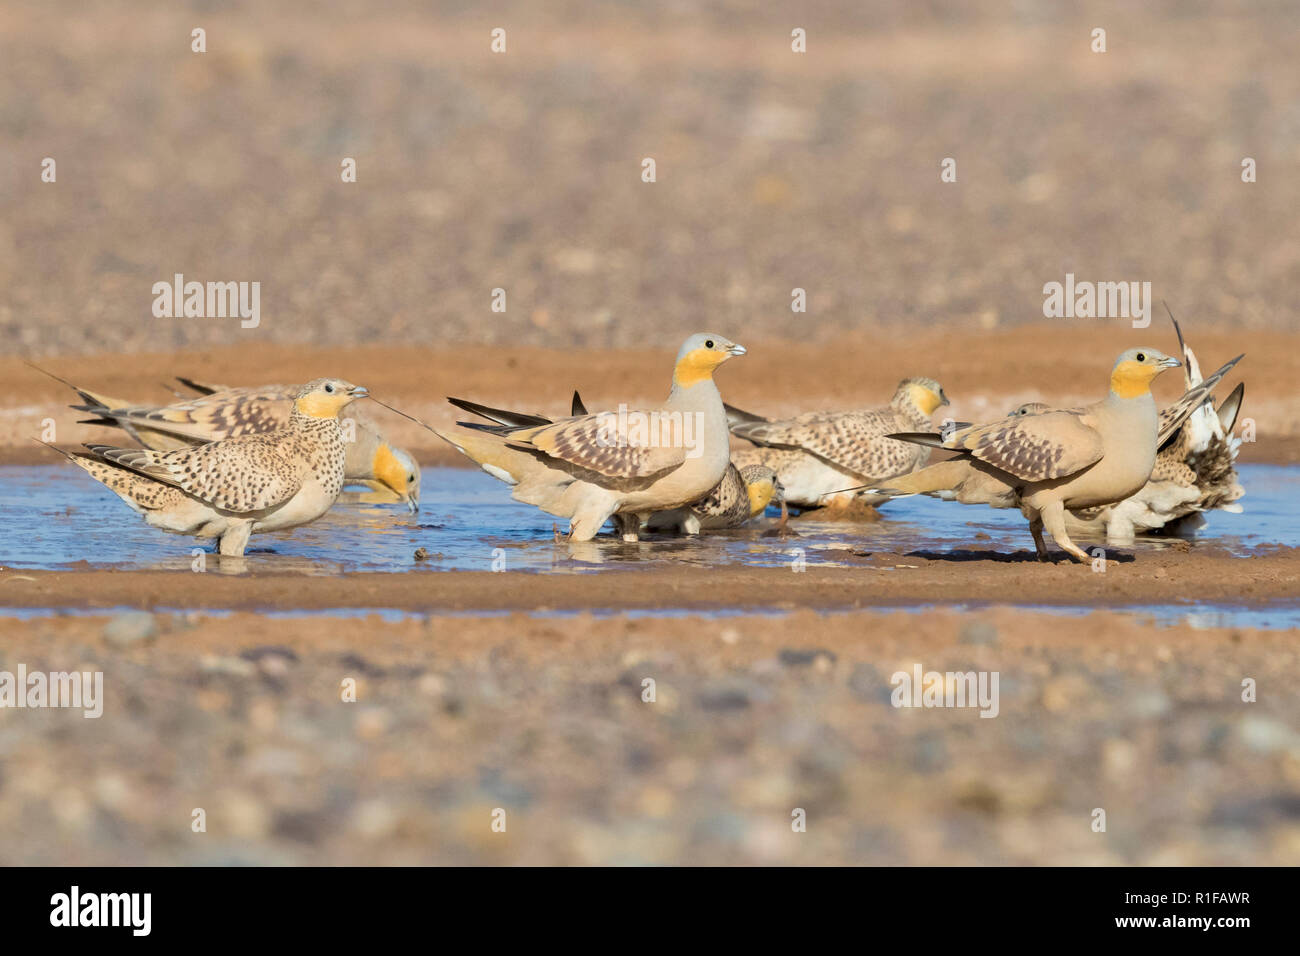 Spotted Sandgrouse (Pterocles senegallus), flock at drinking pool Stock Photo